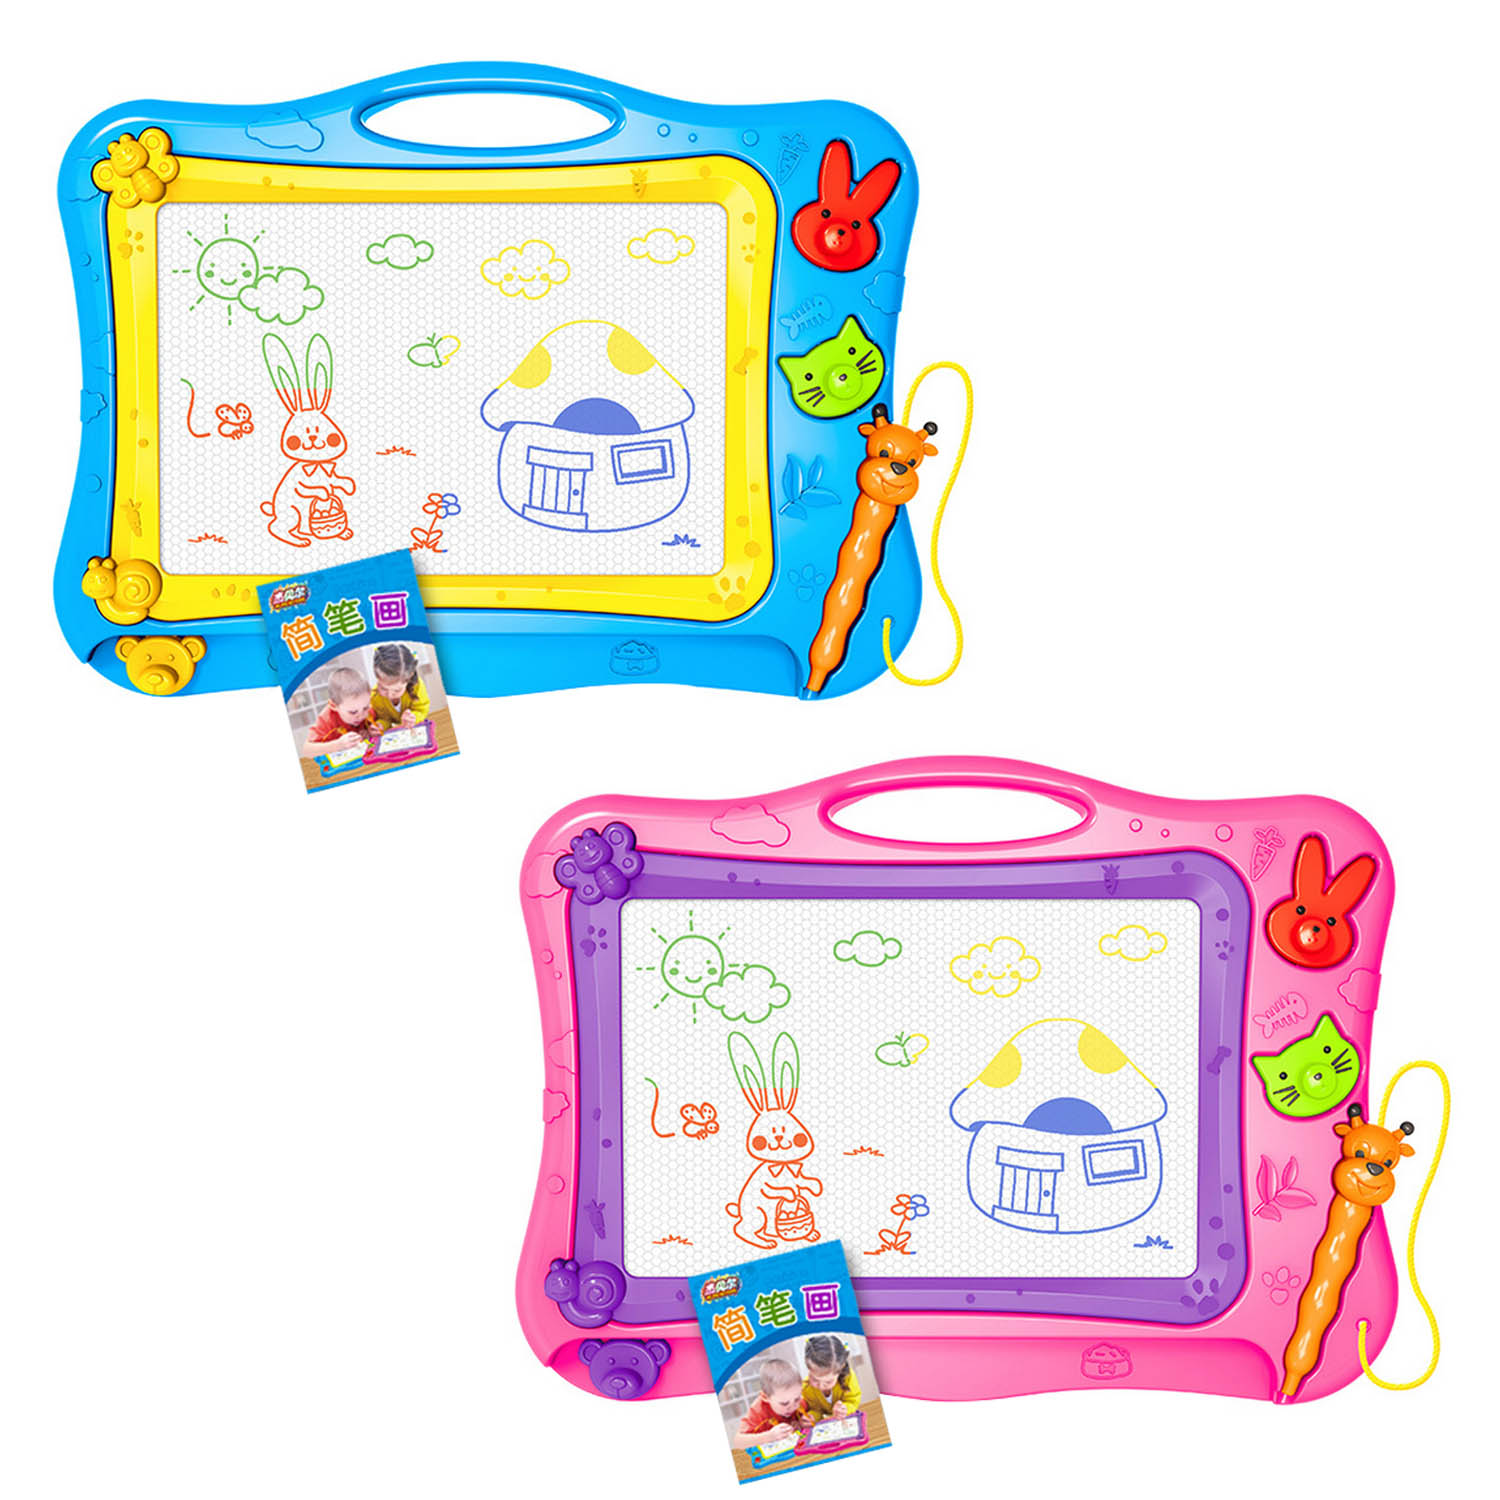 Colorful Erasable Magnetic Doodle Writing Drawing Painting Board Pad Educational Toy with 2pcs Stamps for Kids Toddlers ChildrenColorful Erasable Magnetic Doodle Writing Drawing Painting Board Pad Educational Toy with 2pcs Stamps for Kids Toddlers Children